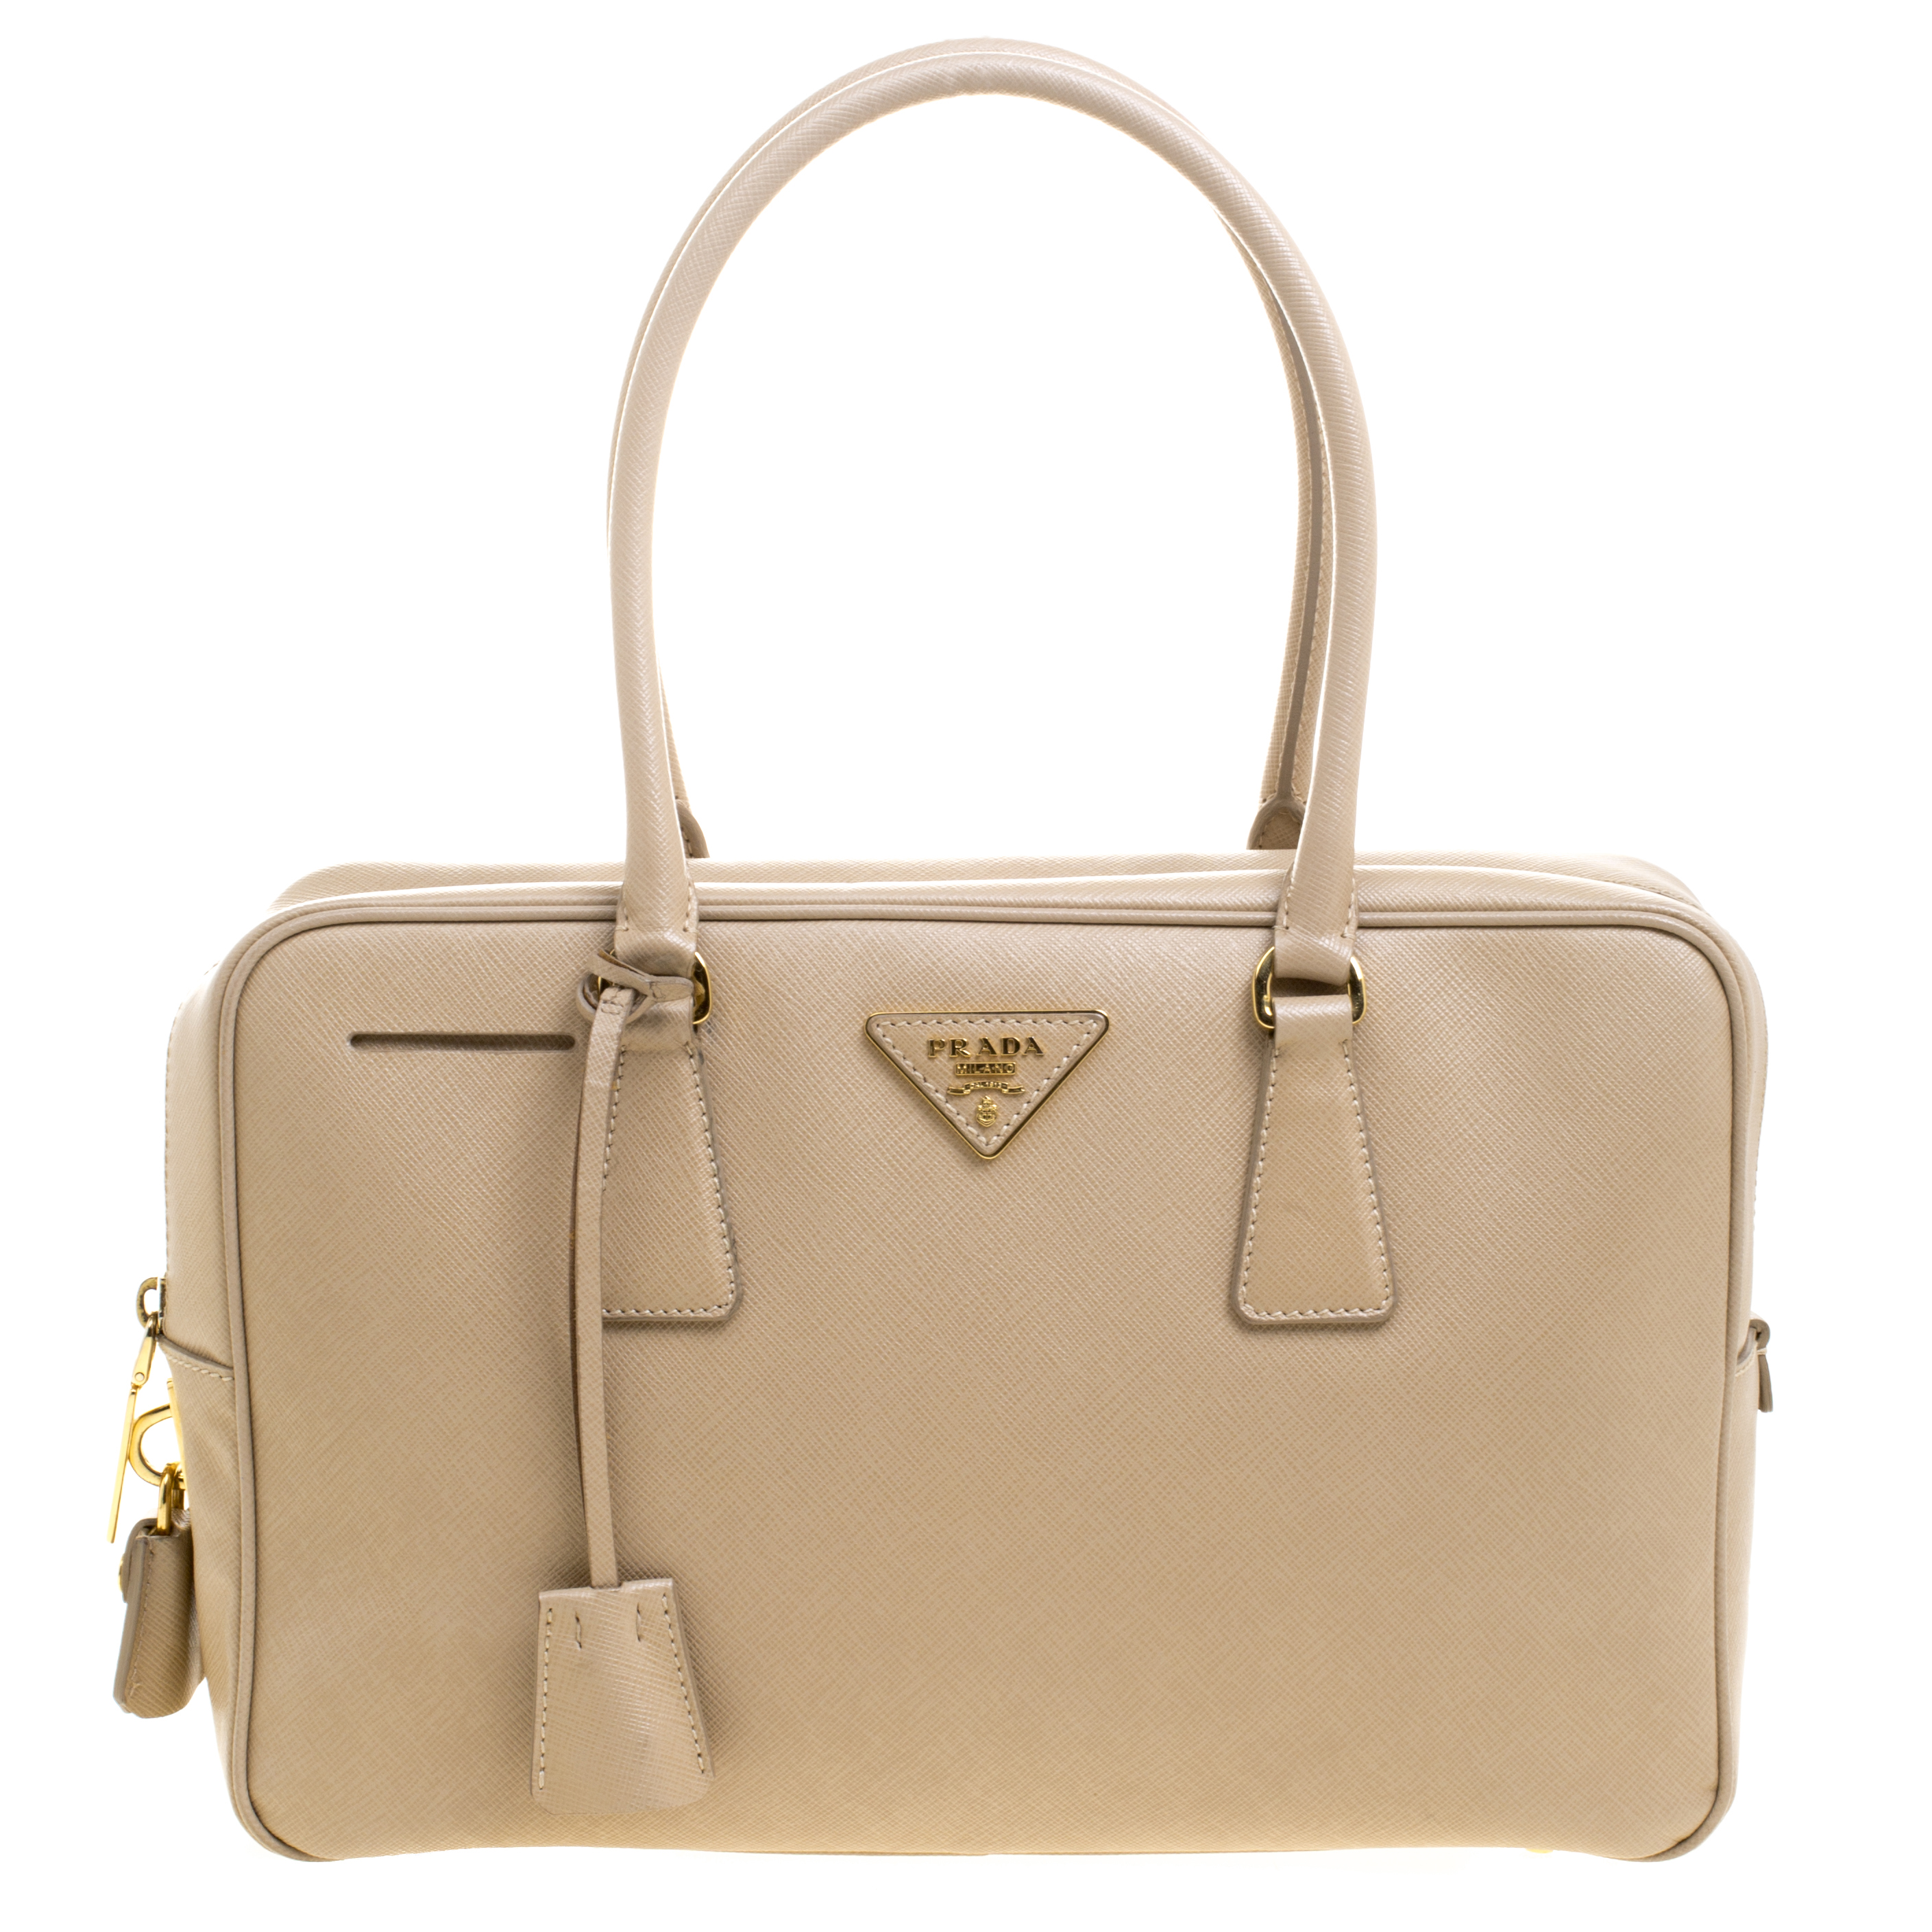 5f52689d314c21 ... canada prada beige saffiano lux leather top handle bowling bag buy sell  07d50 1ec87